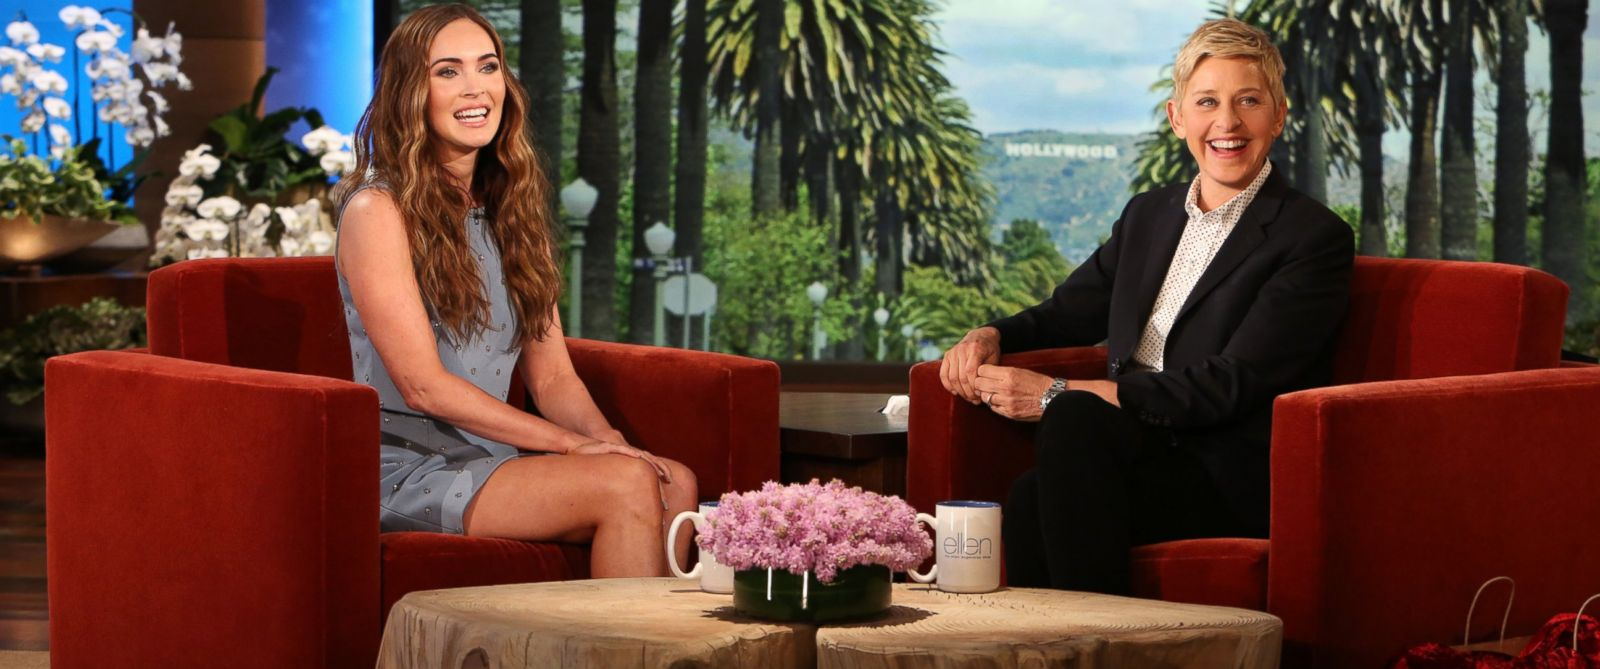 PHOTO: Megan Fox speaks with Ellen DeGeneres on The Ellen DeGeneres Show, May 5, 2014.